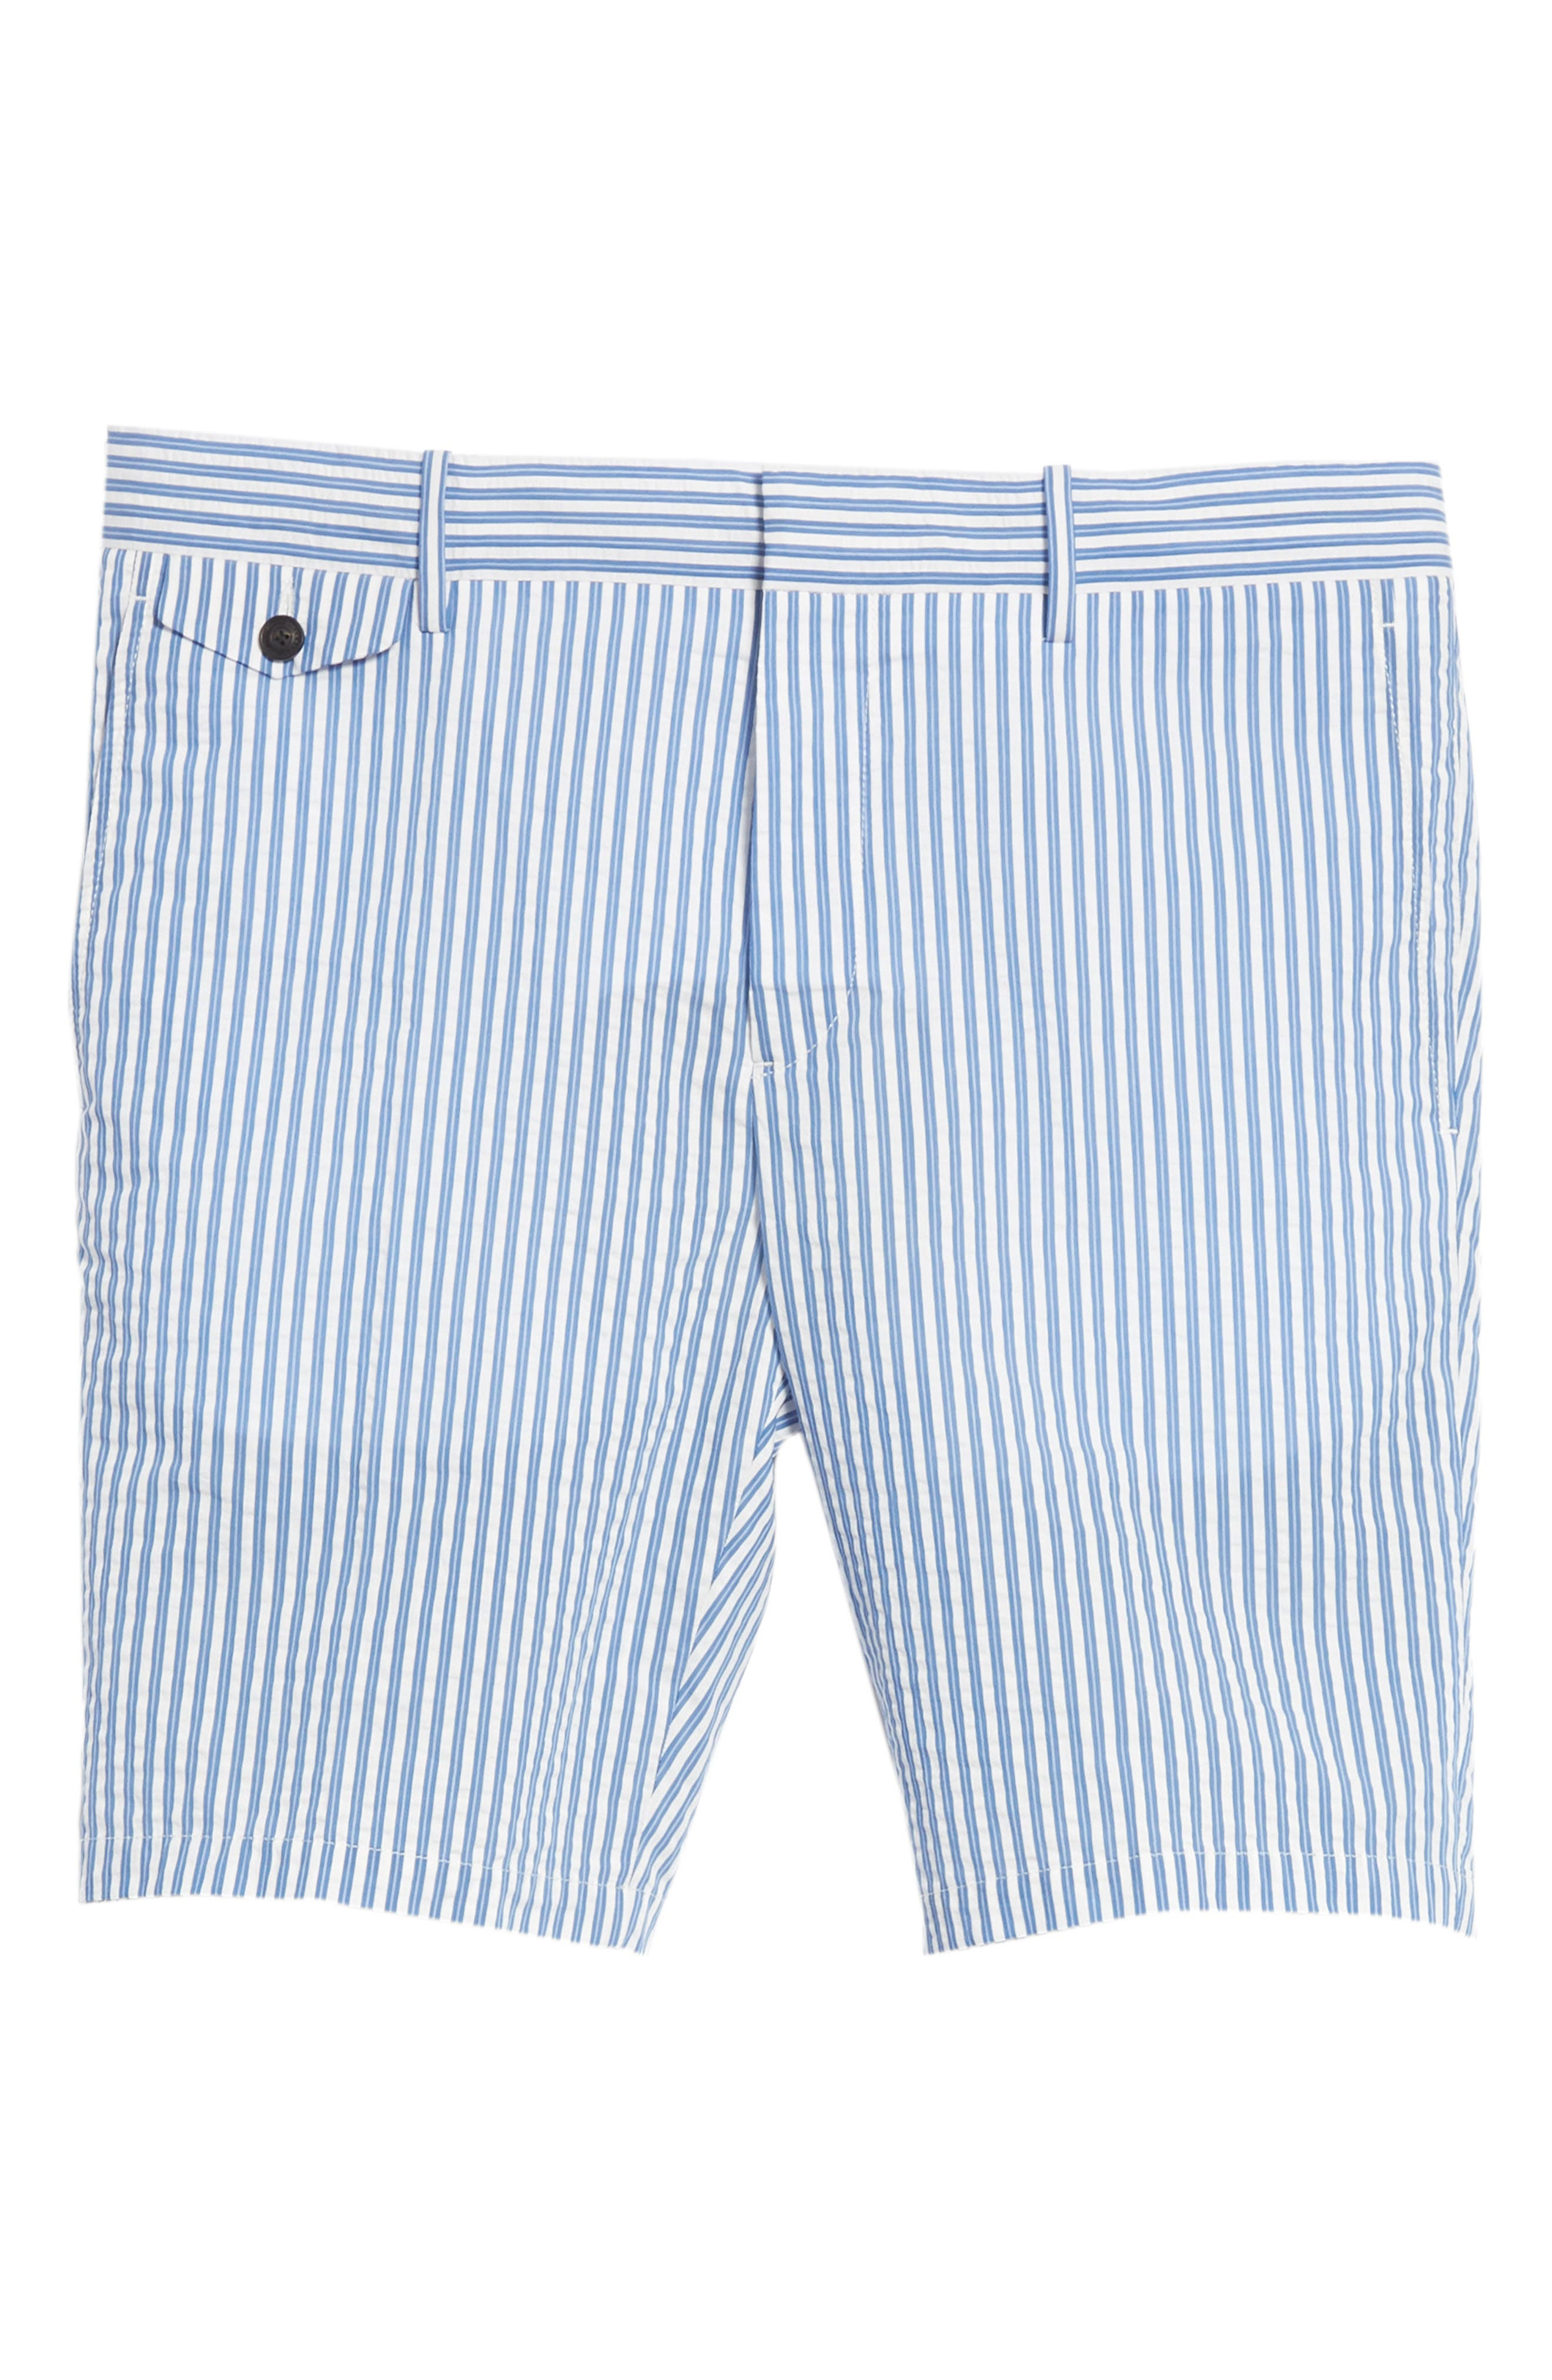 Serpentine Stripe Shorts,                             Alternate thumbnail 6, color,                             Navy